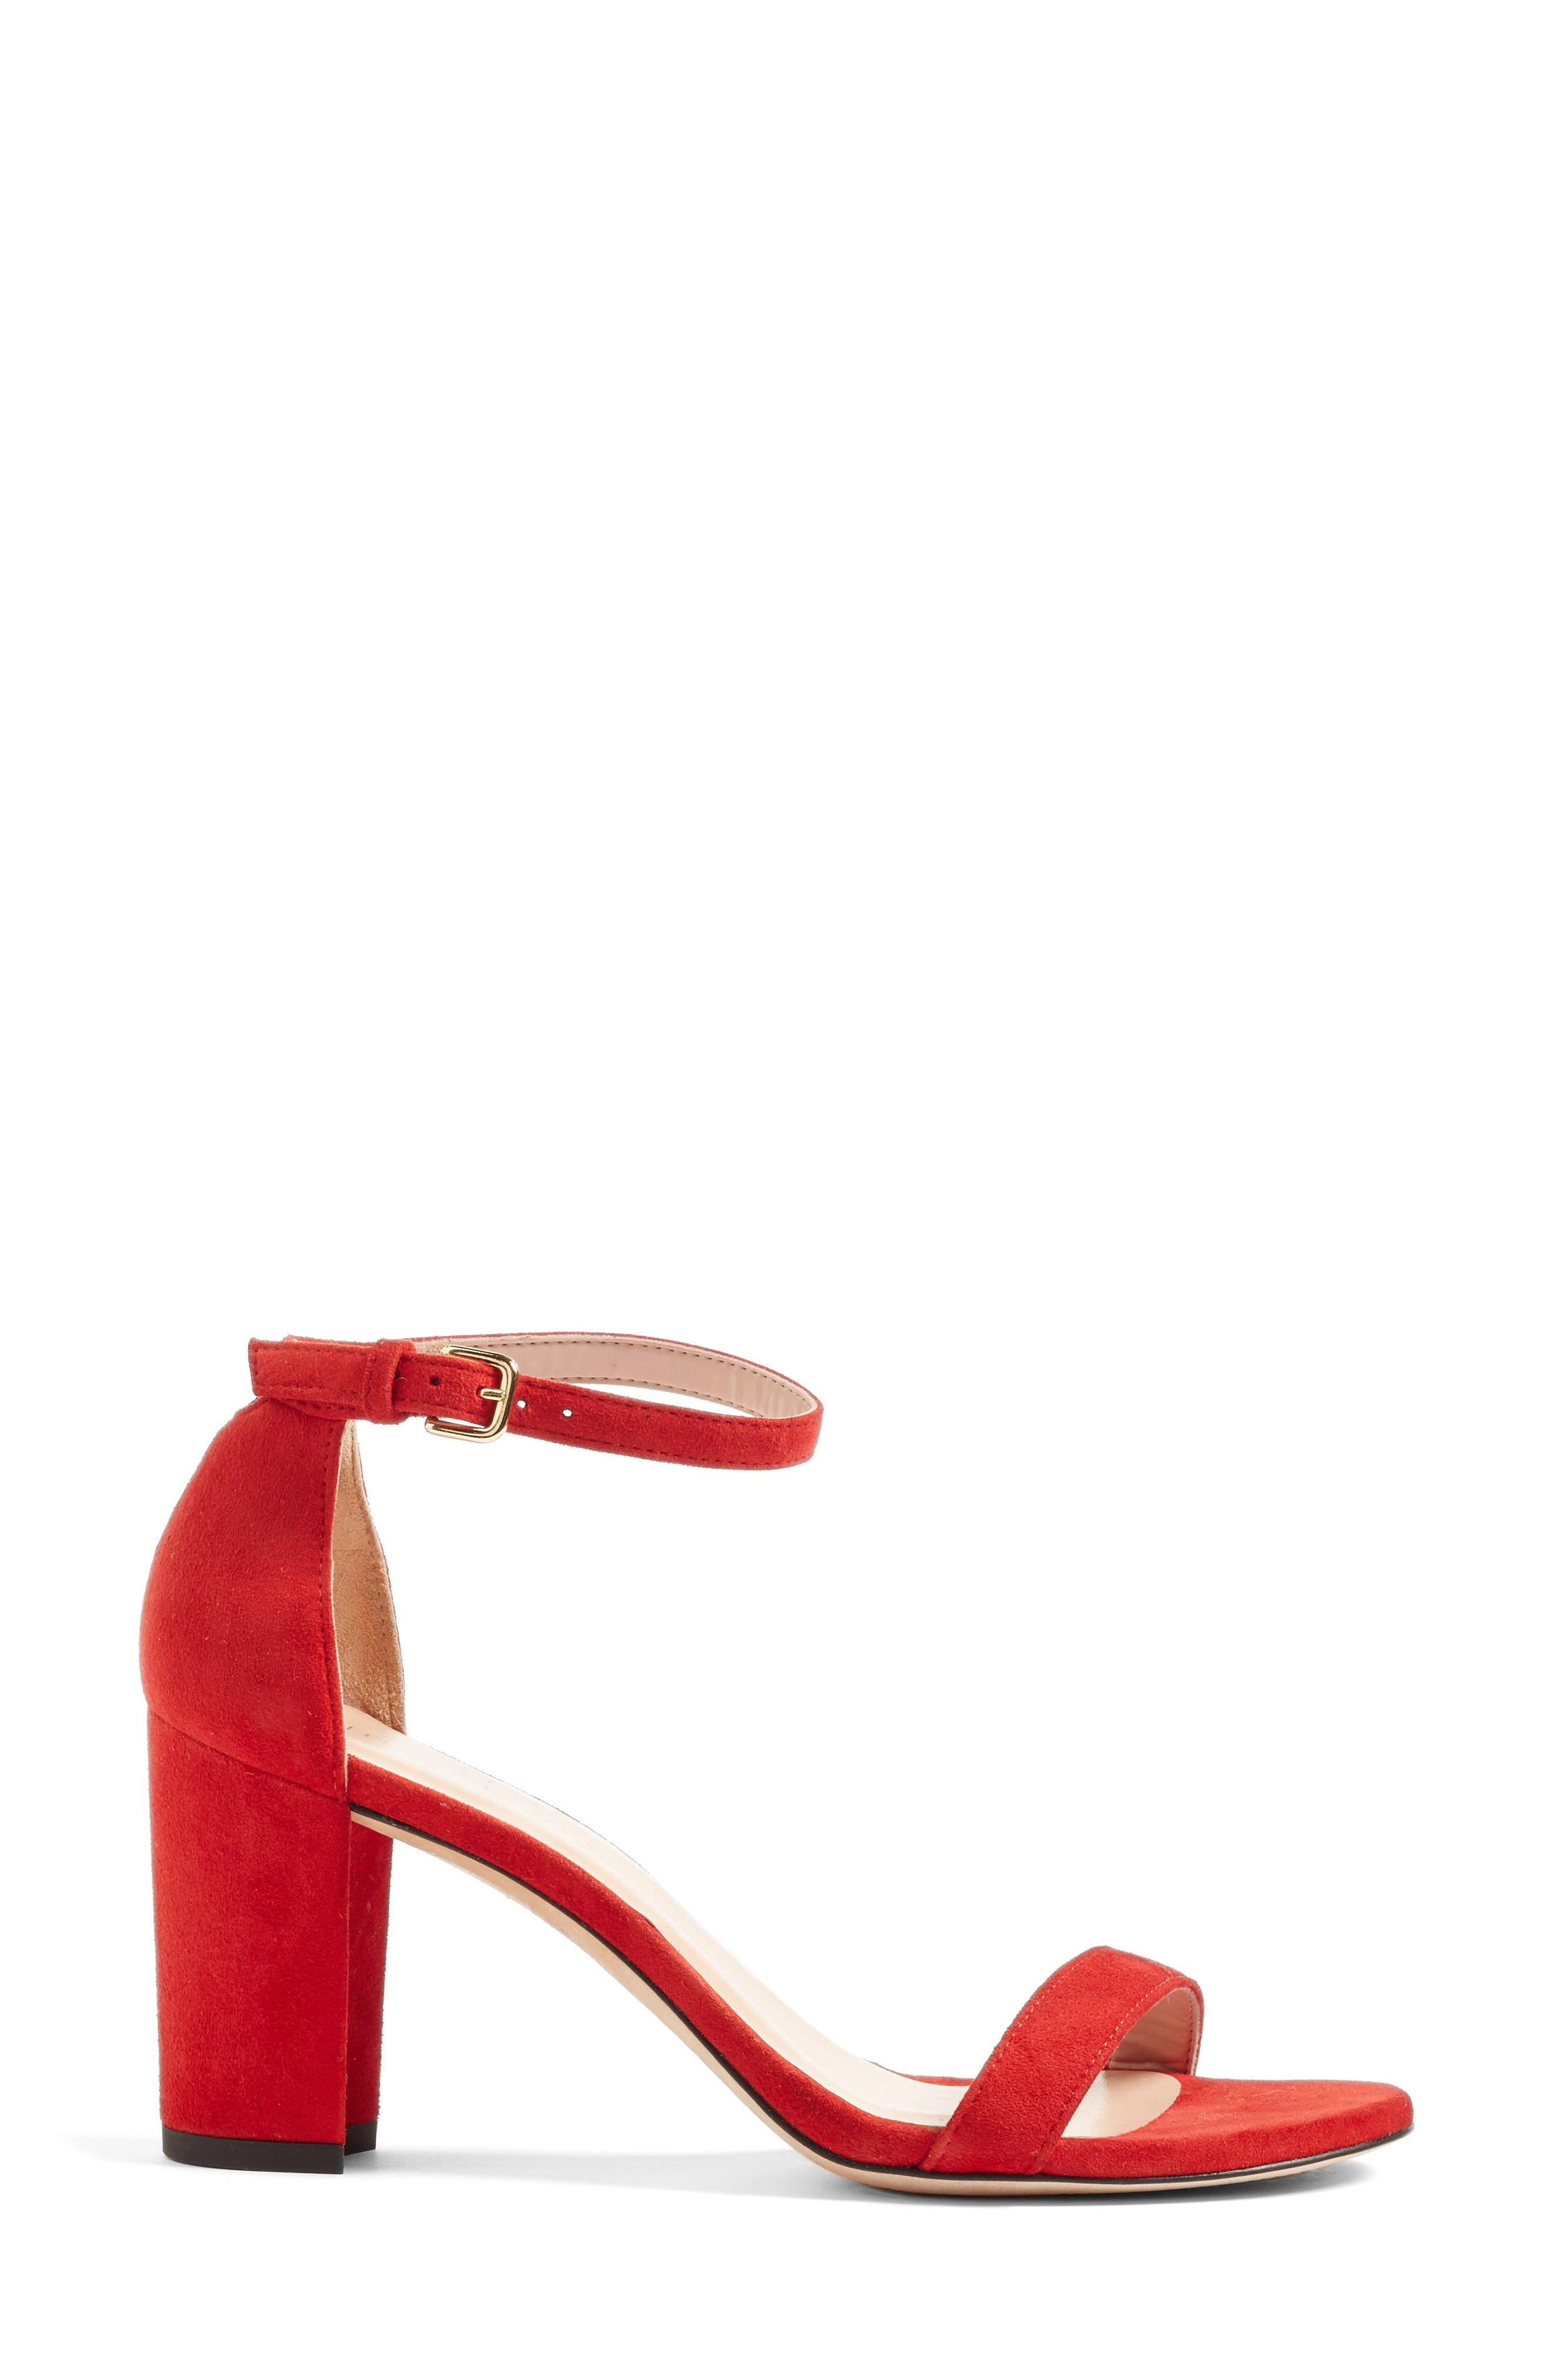 NearlyNude Ankle Strap Sandal,                             Alternate thumbnail 133, color,